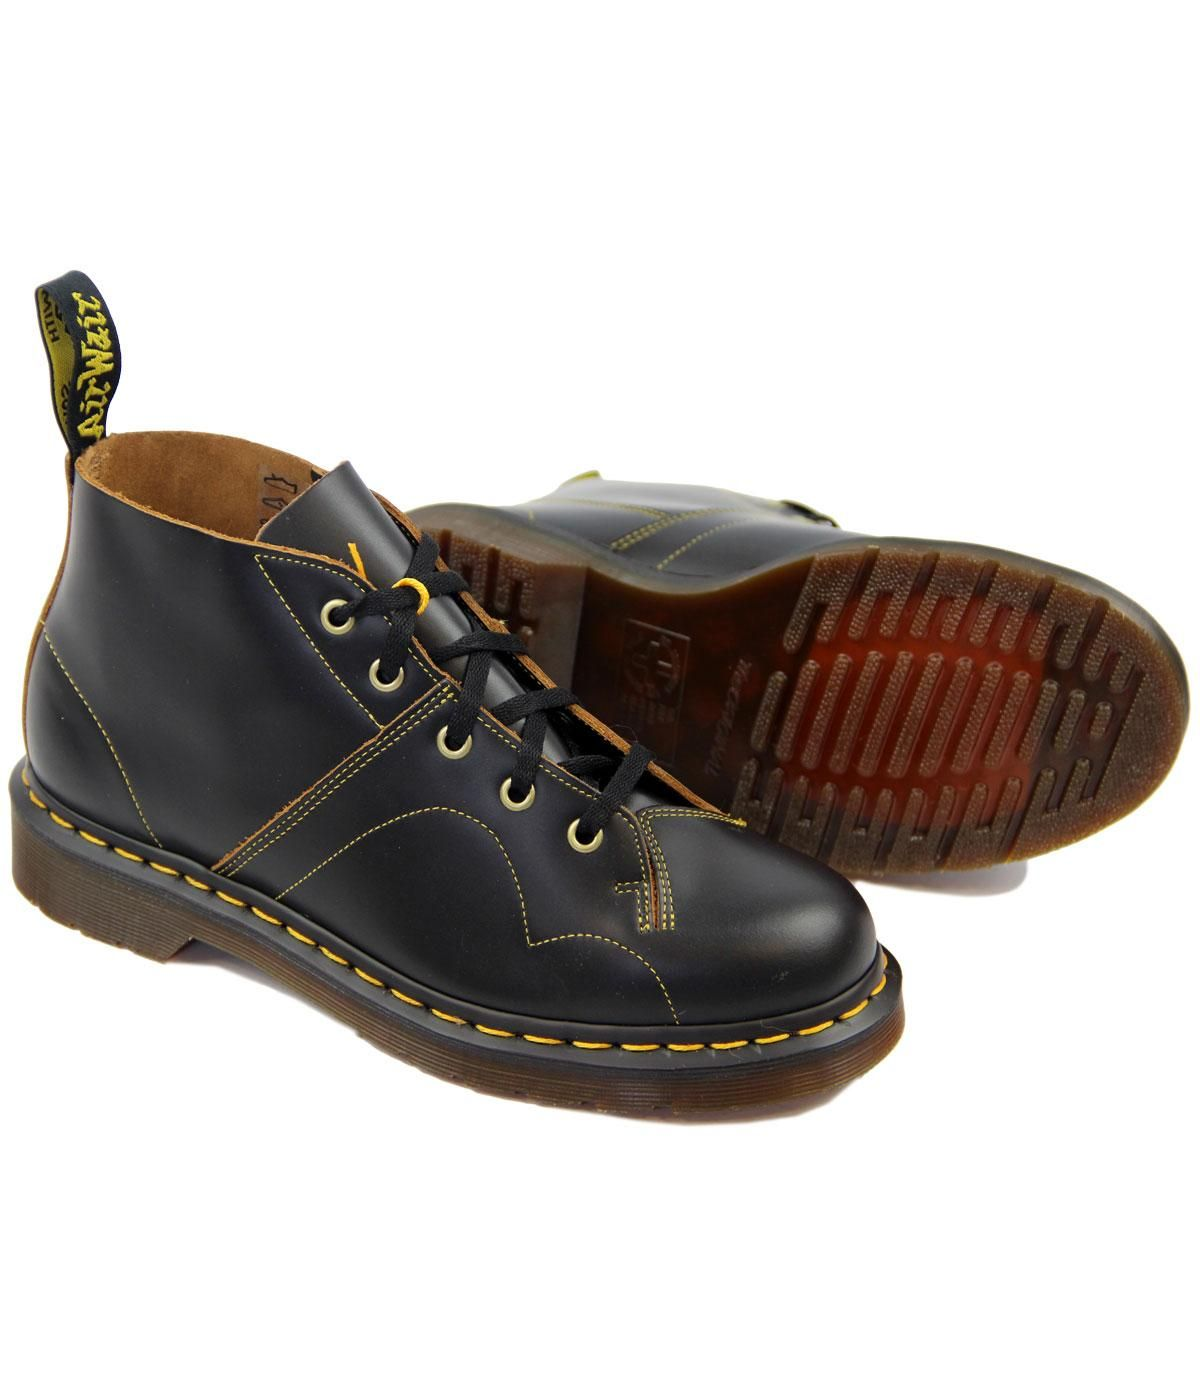 Dr Martens Church Retro 60's Mod Monkey Boots in Black